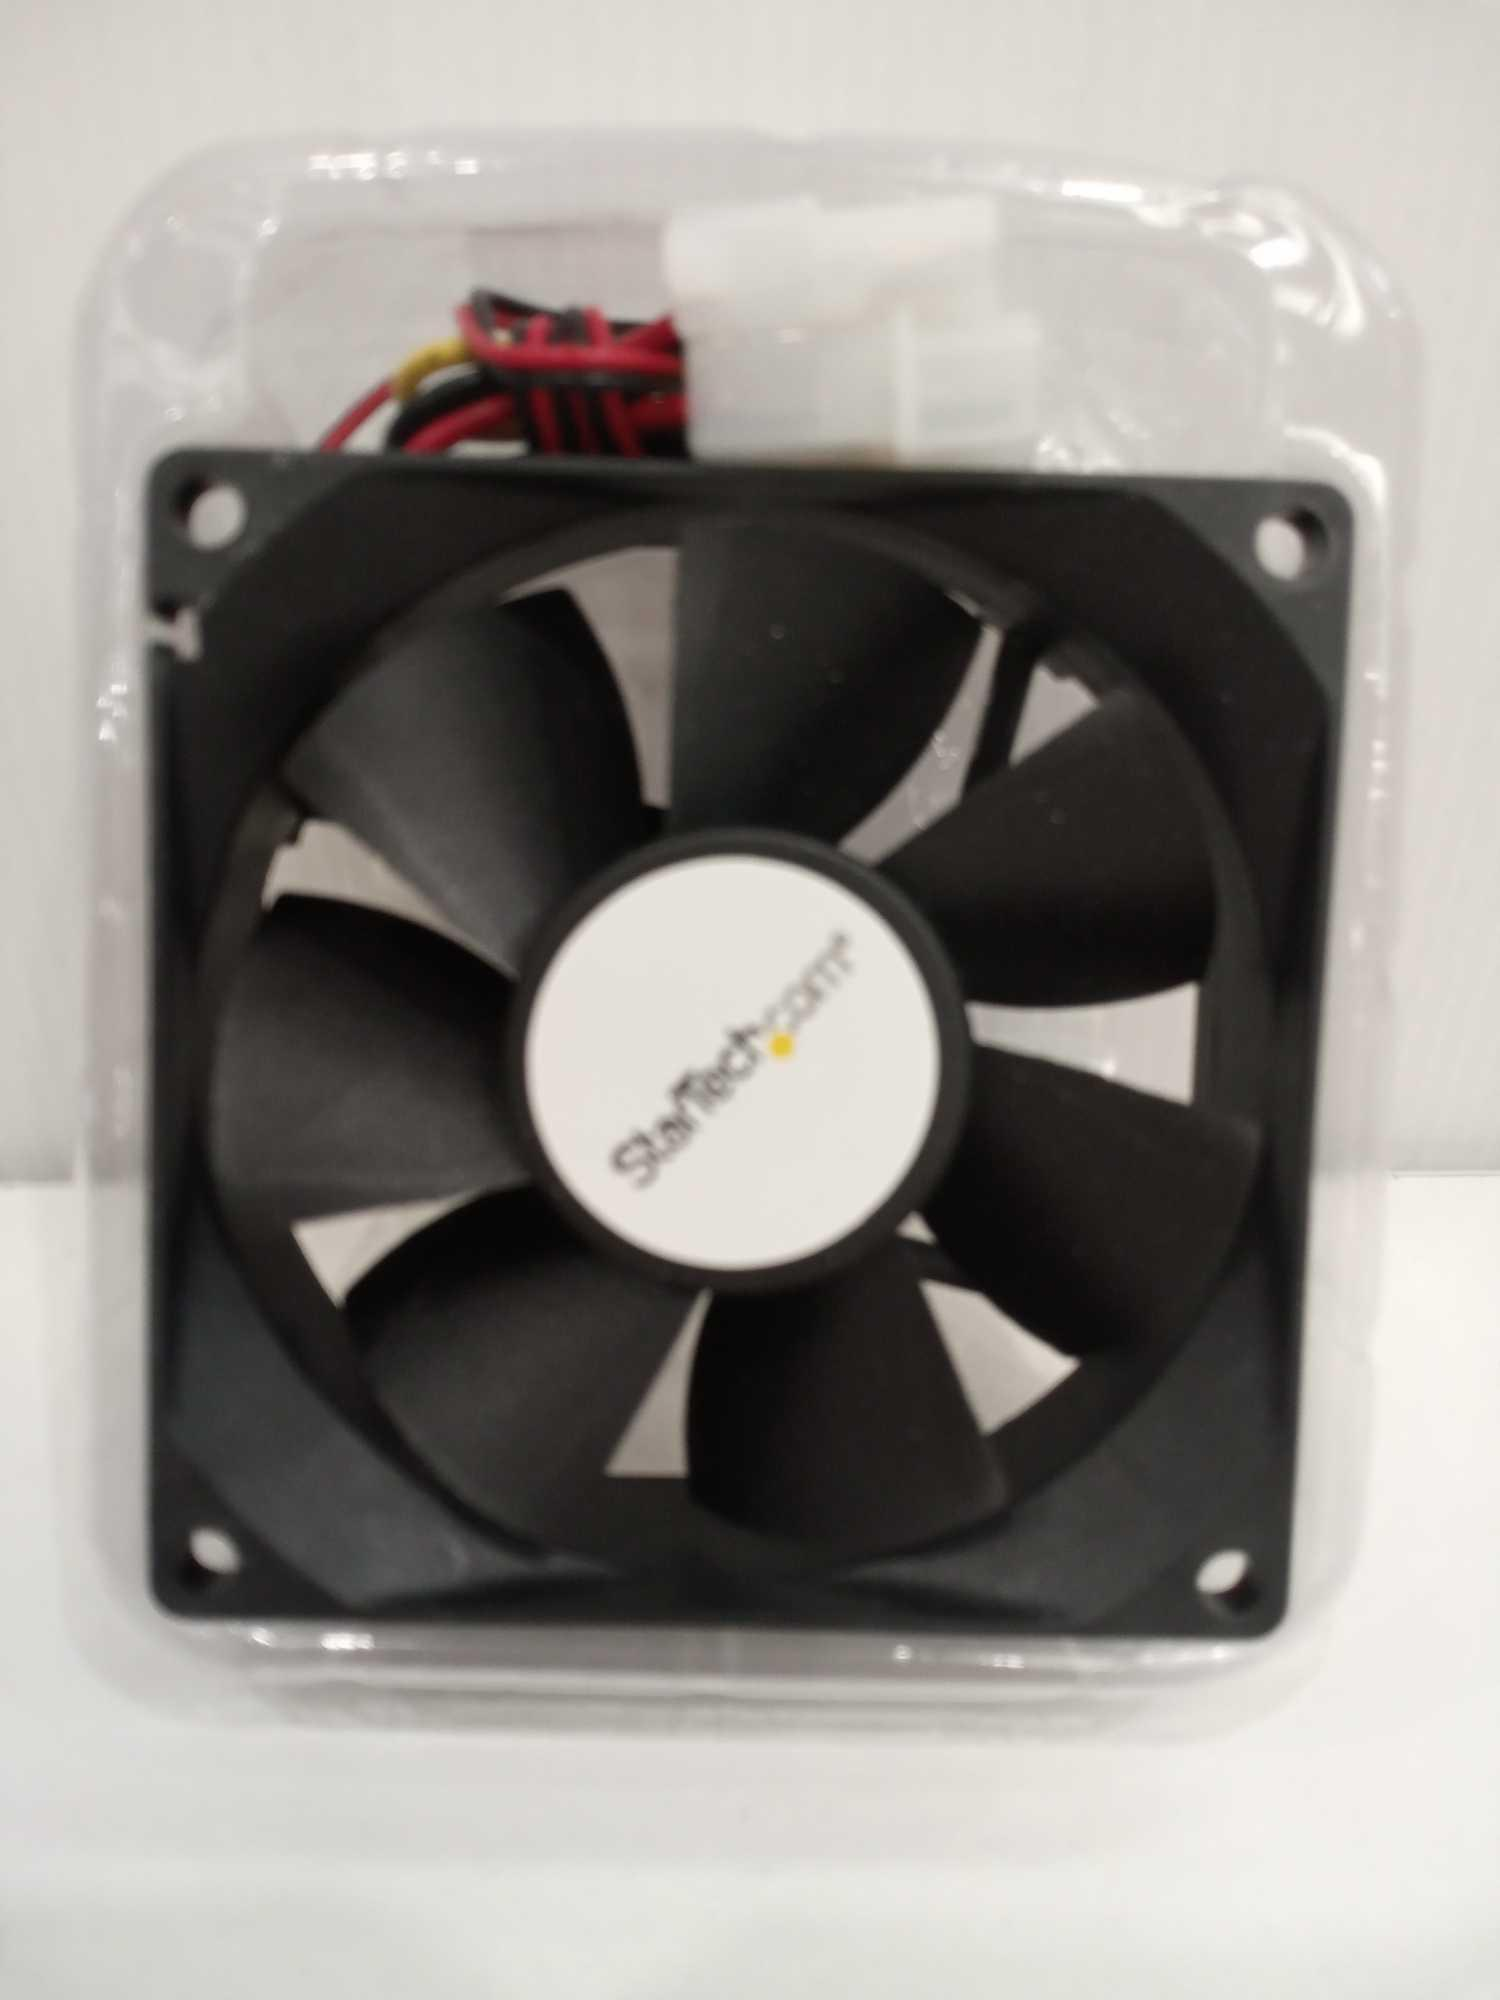 Rrp £50 Boxed Star Tech Ever Cool Fan